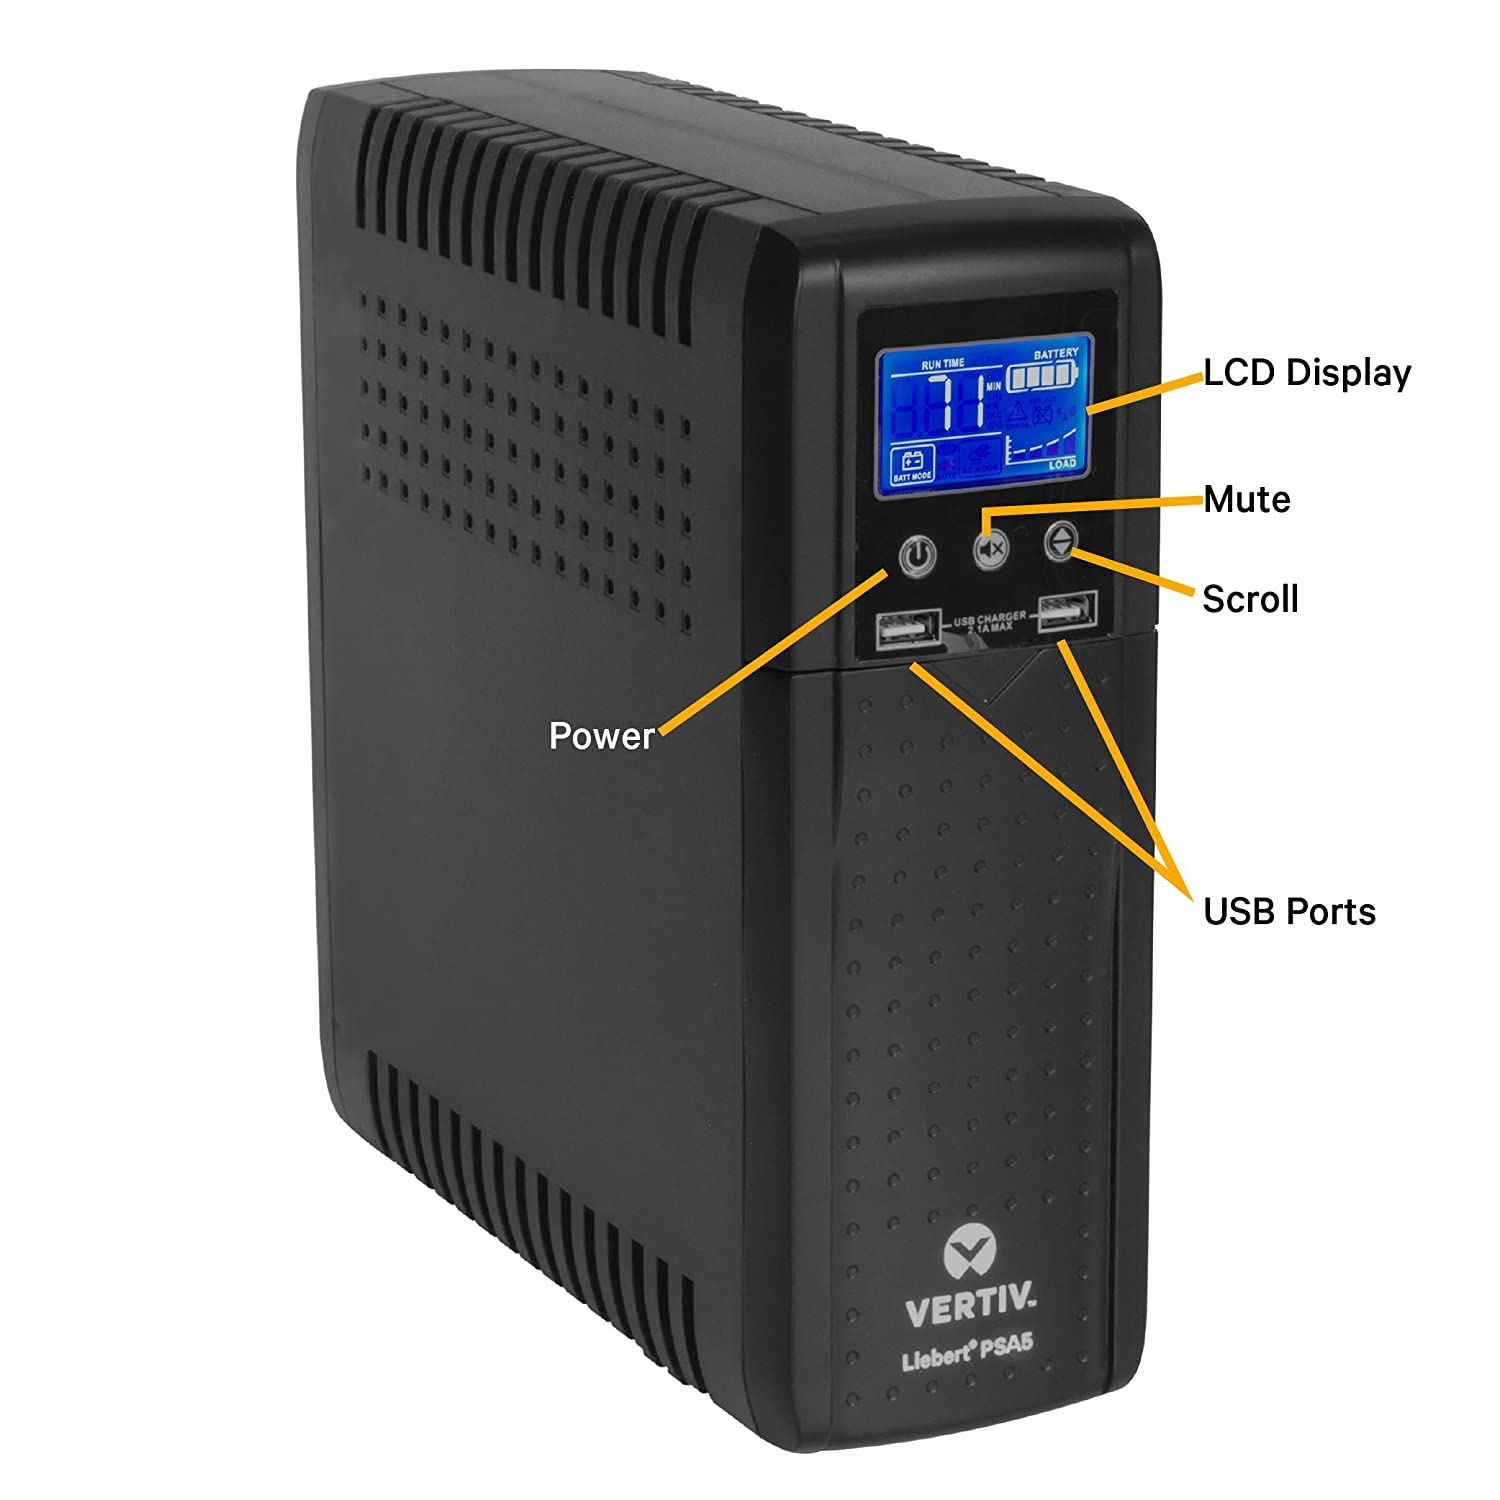 Full Unit Replacement Warranty 10 outlets and Three-Year PSA5-1500MT120 Vertiv Liebert PSA5 1500VA 900W line-Interactive UPS with AVR Technology and Battery Backup